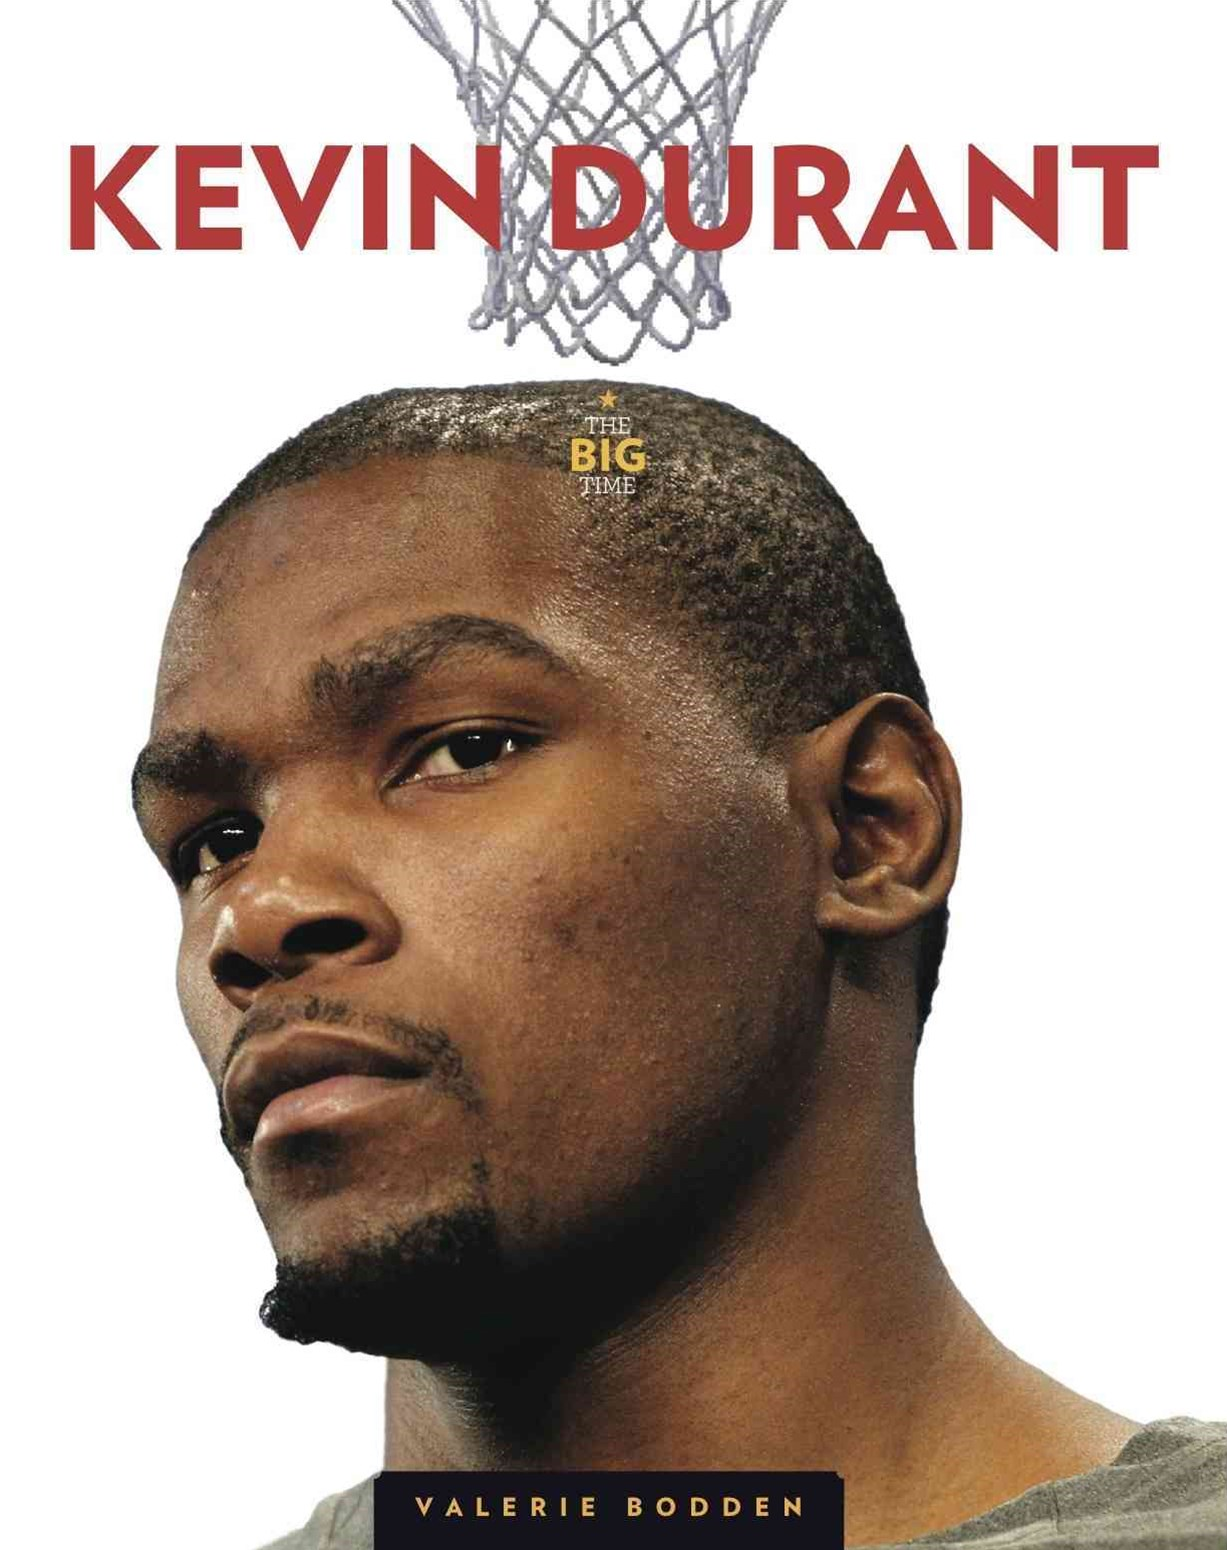 The Big Time: Kevin Durant